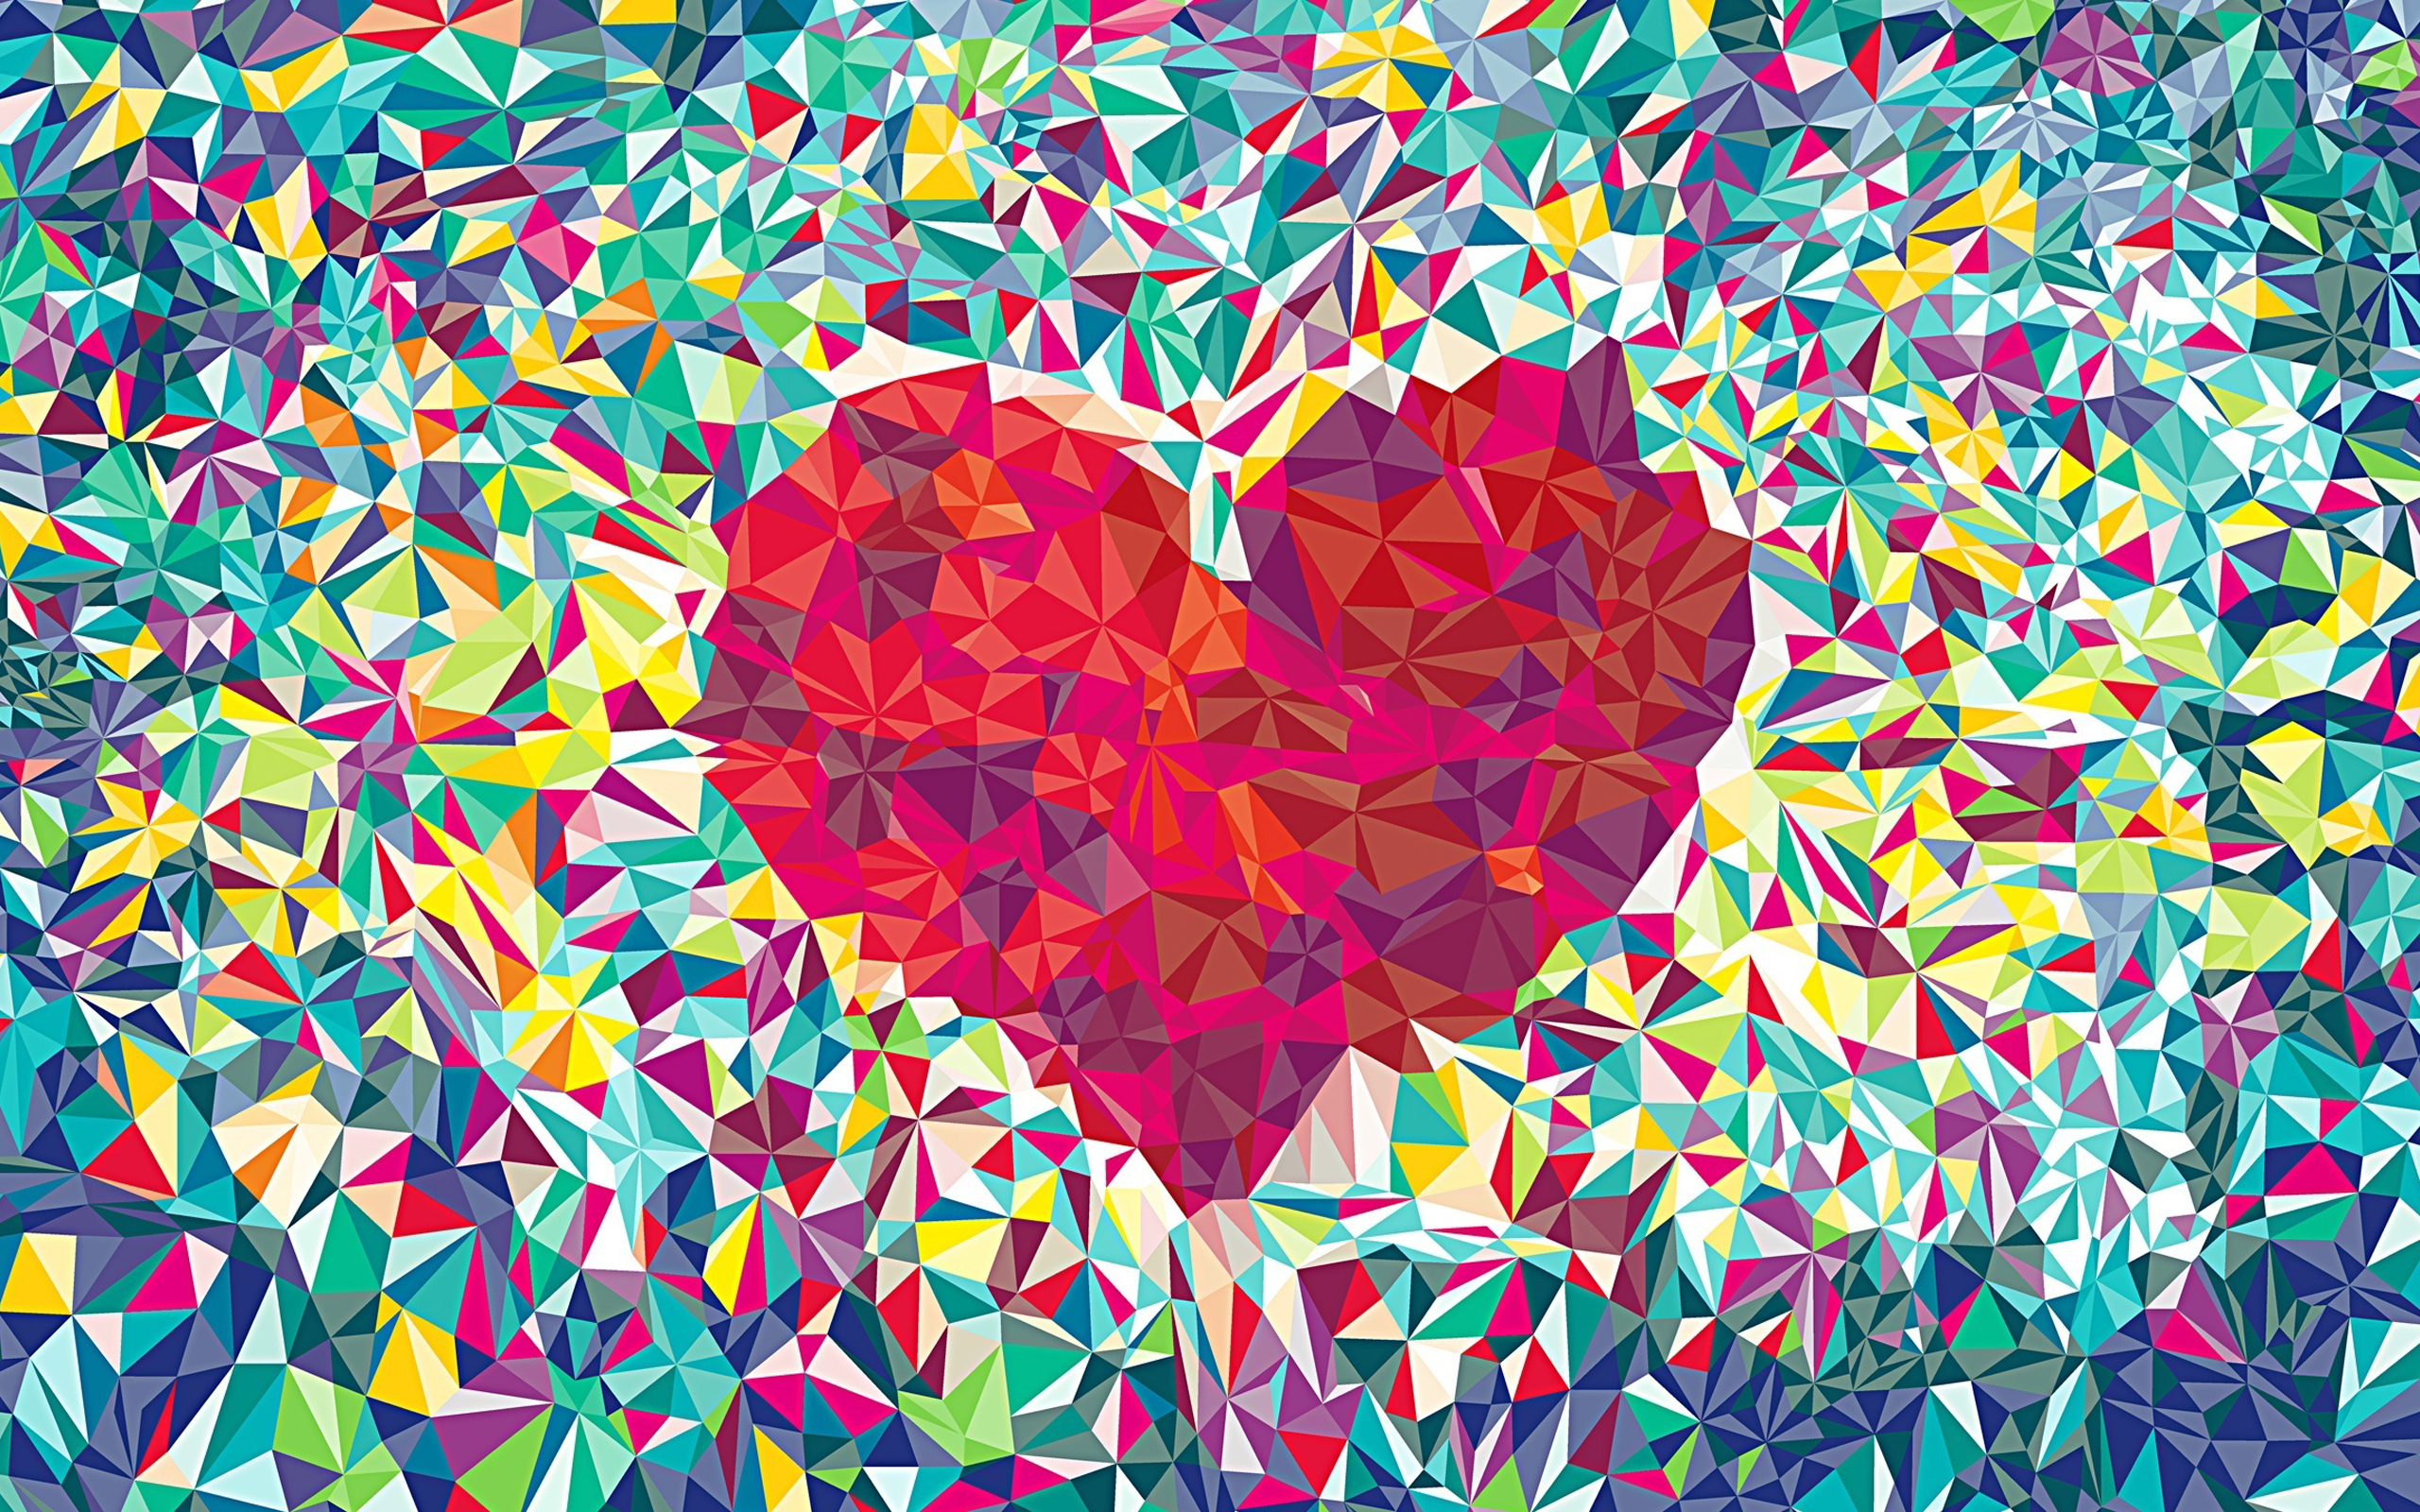 Geometric Heart Abstract Wallpapers 232.38 Kb